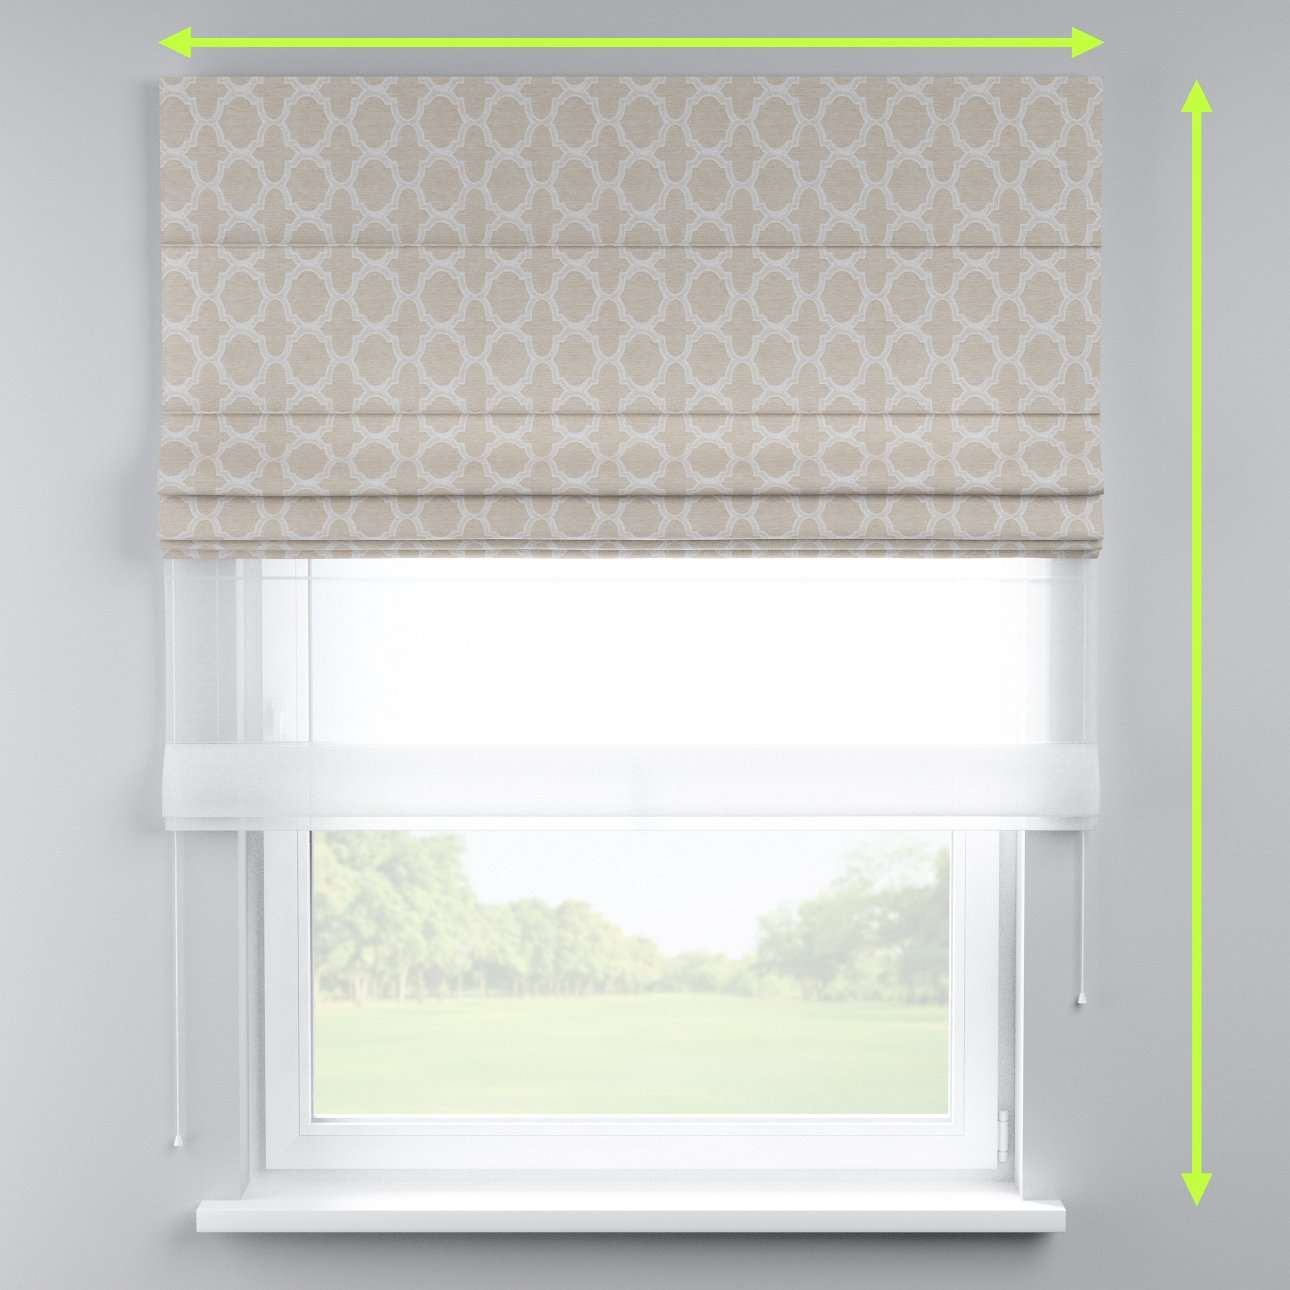 Voile and fabric roman blind (DUO II) in collection Rustica, fabric: 138-25